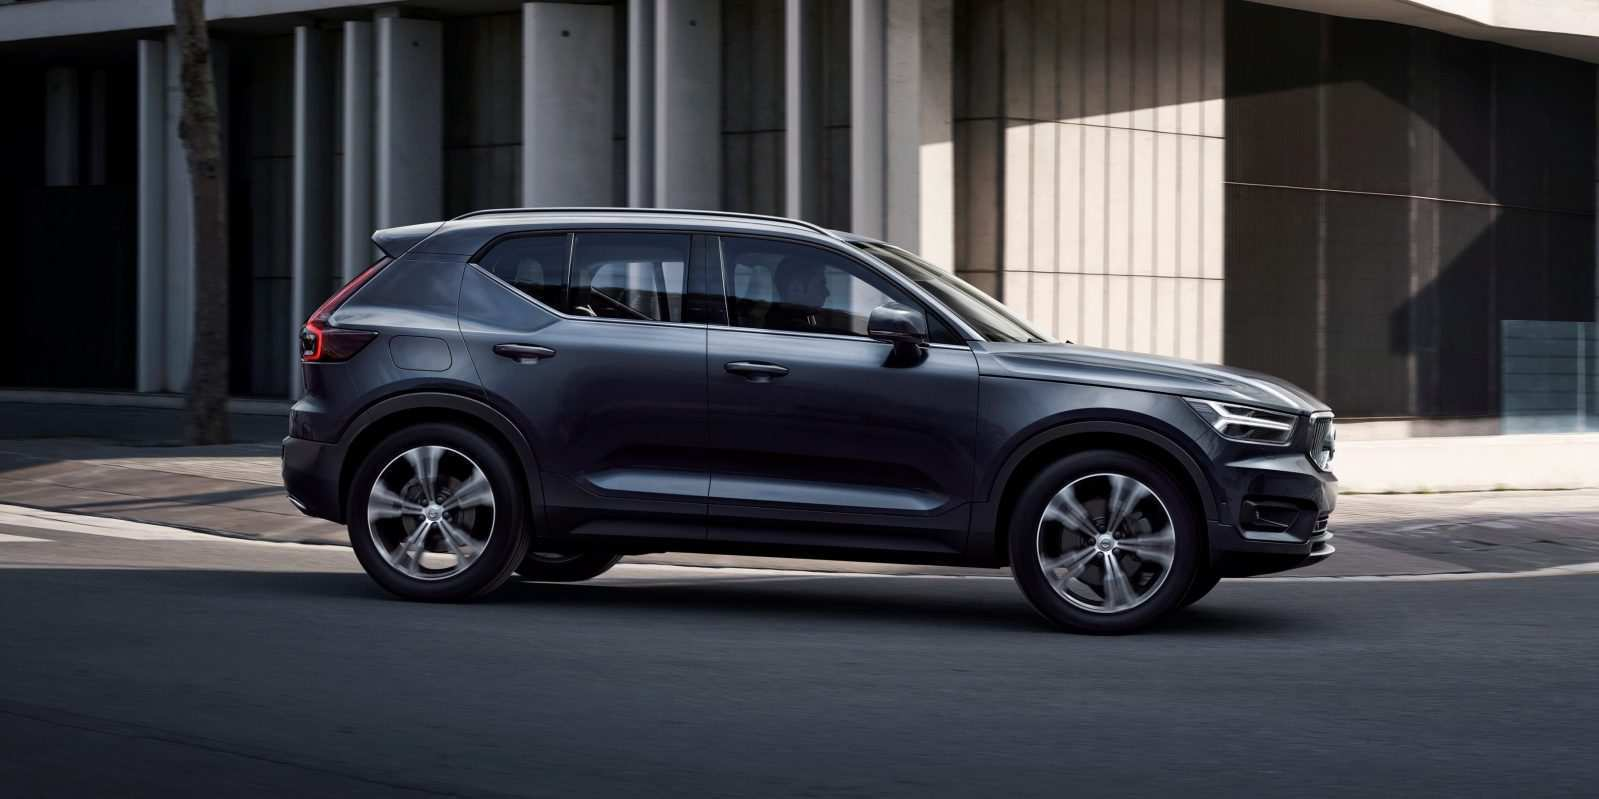 62 Great Volvo To Go Electric By 2020 Pricing for Volvo To Go Electric By 2020